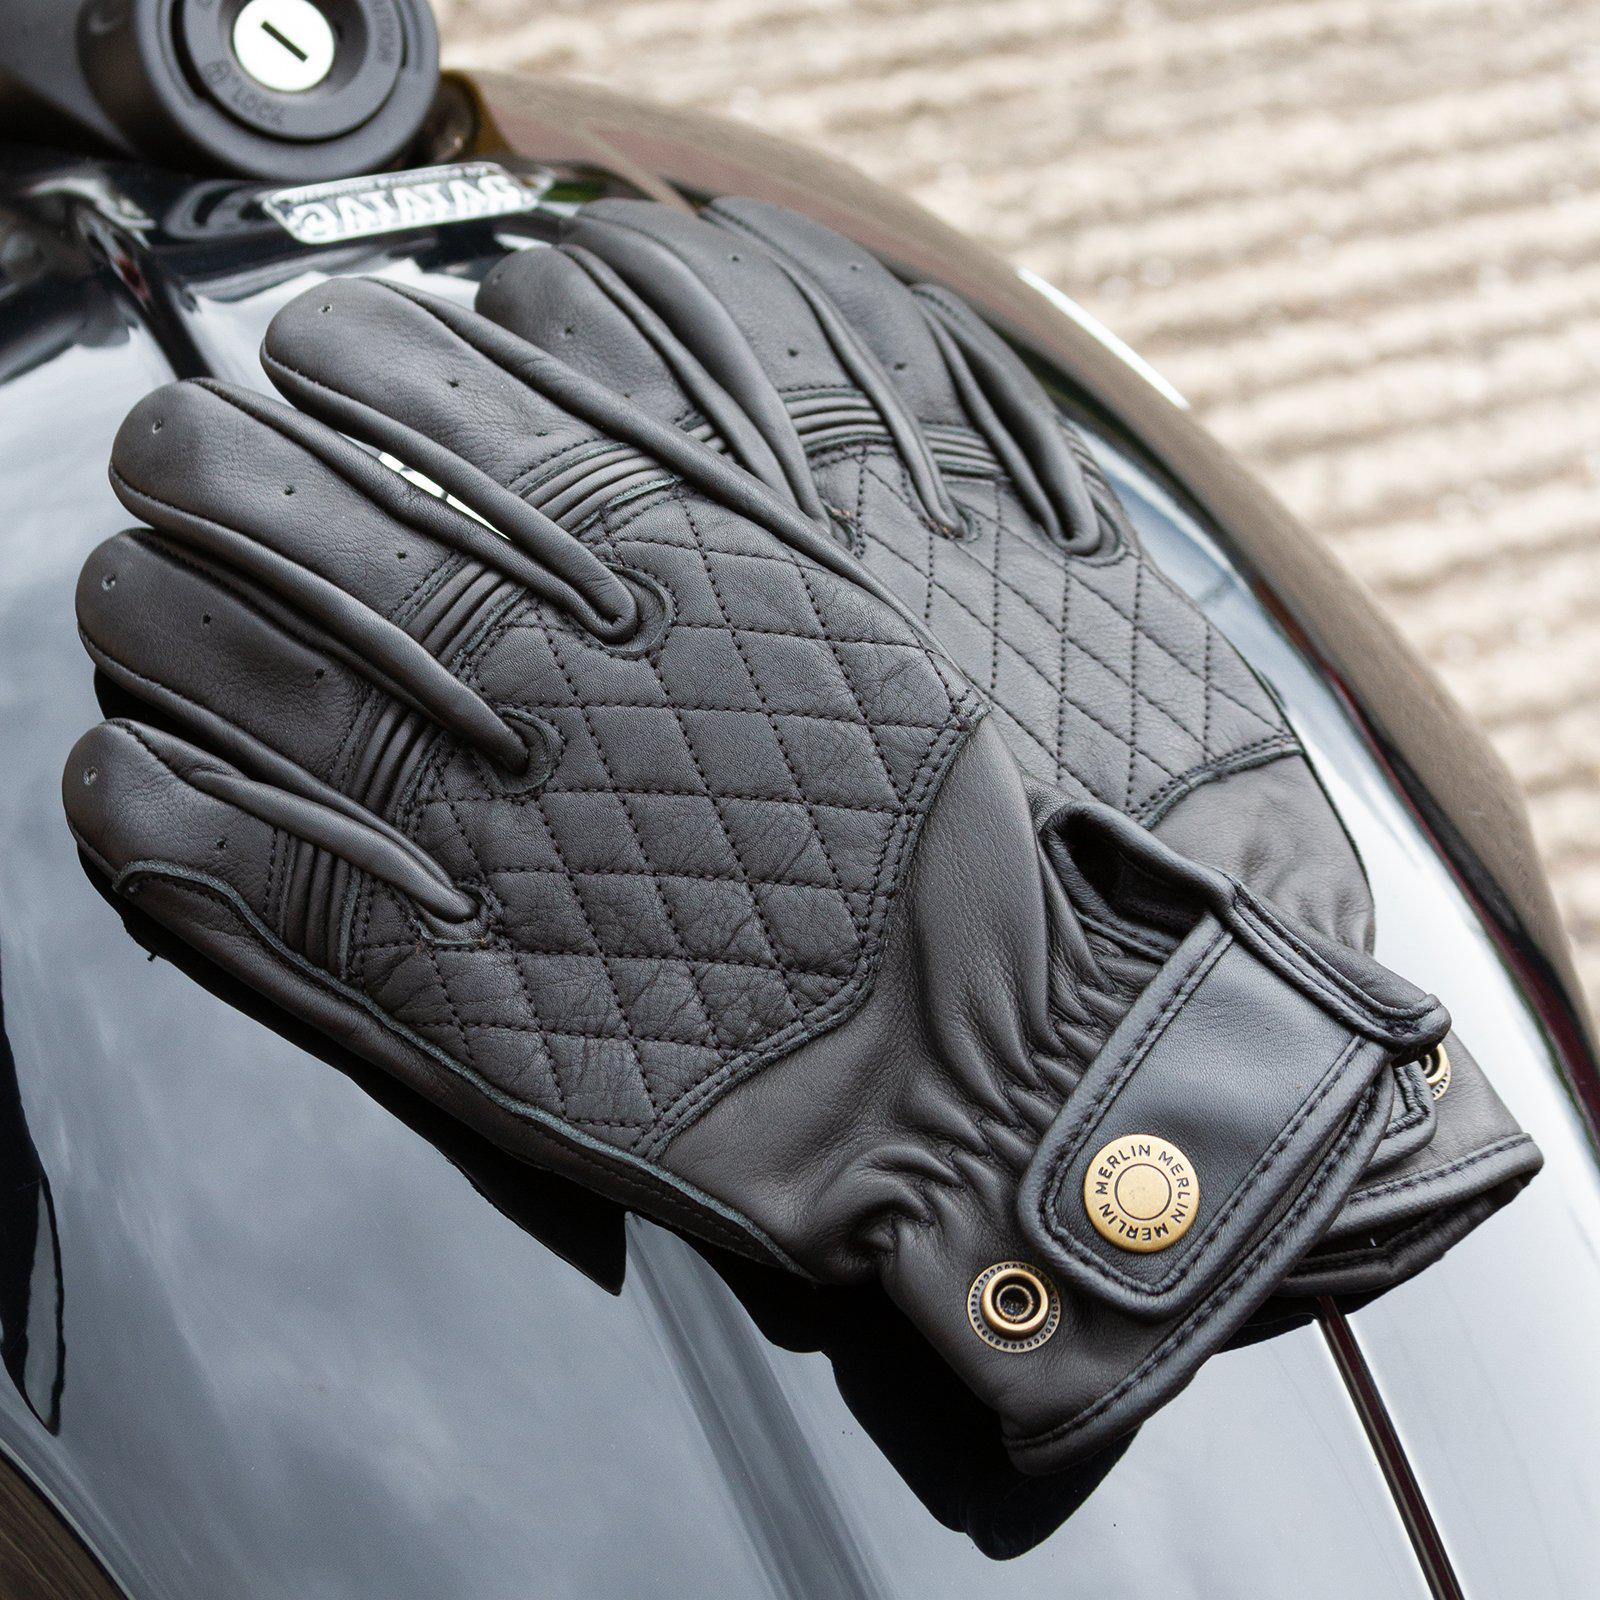 Skye Ladies Glove-Gloves-Merlin-Merlin Bike Gear